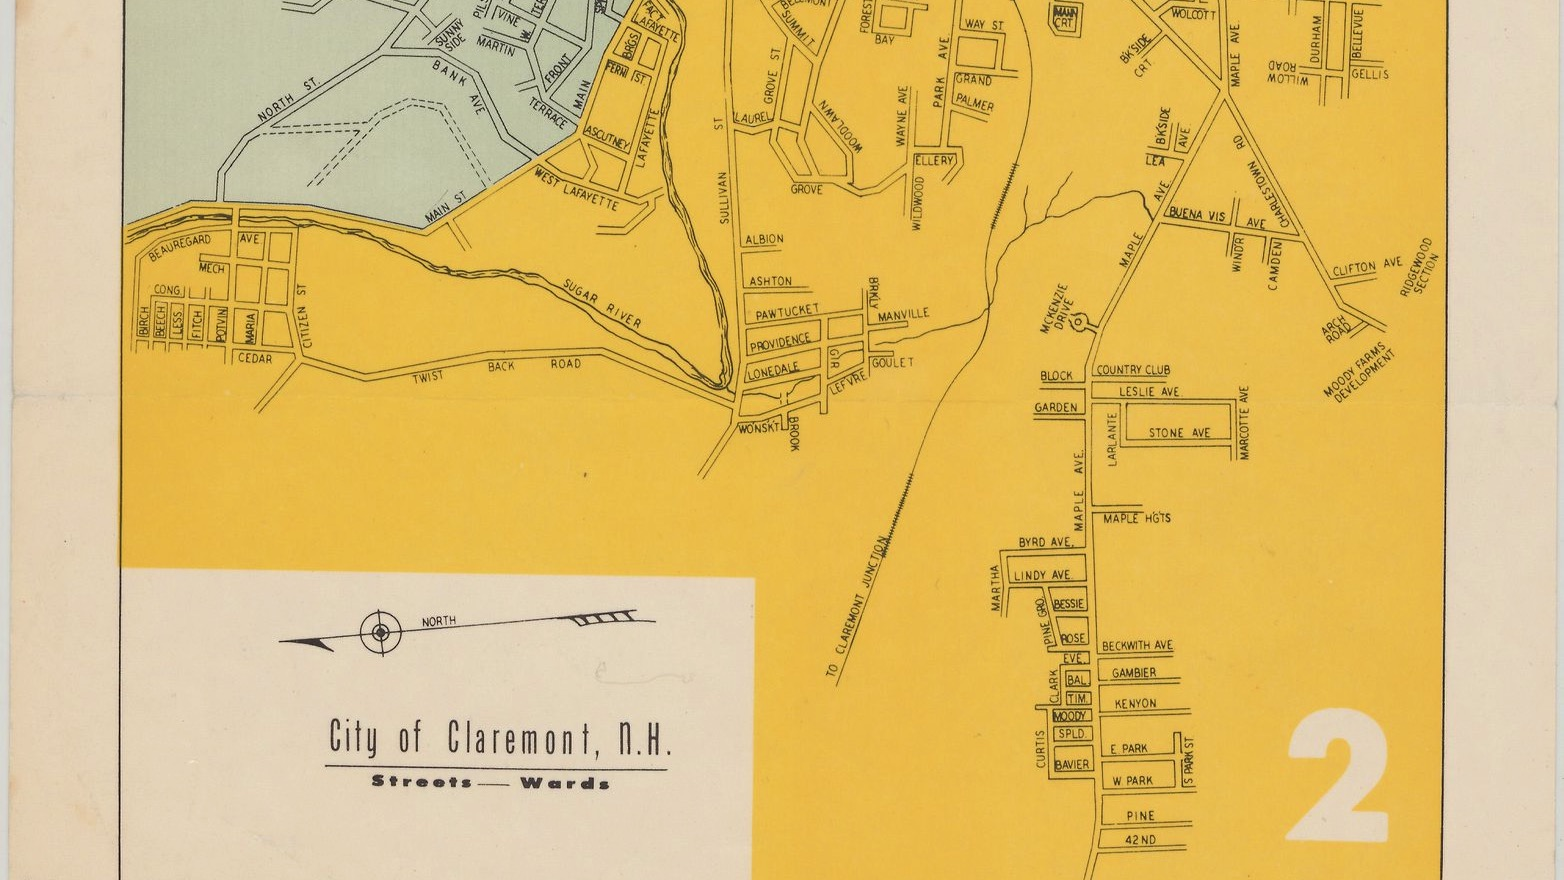 map of the city of Claremont, NH